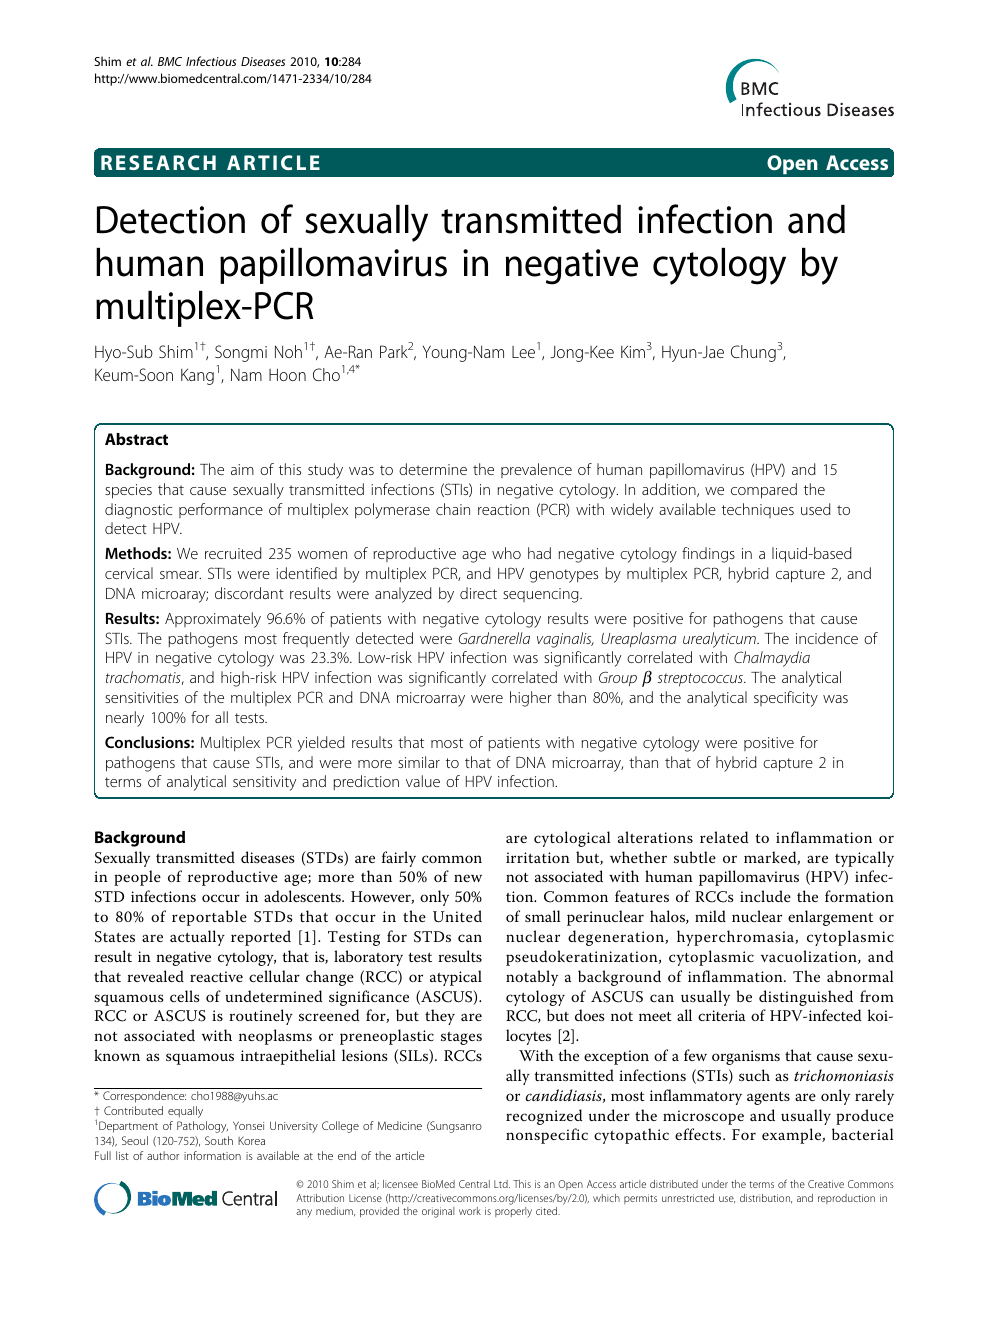 Seegen multiplex sexual transmitted infection